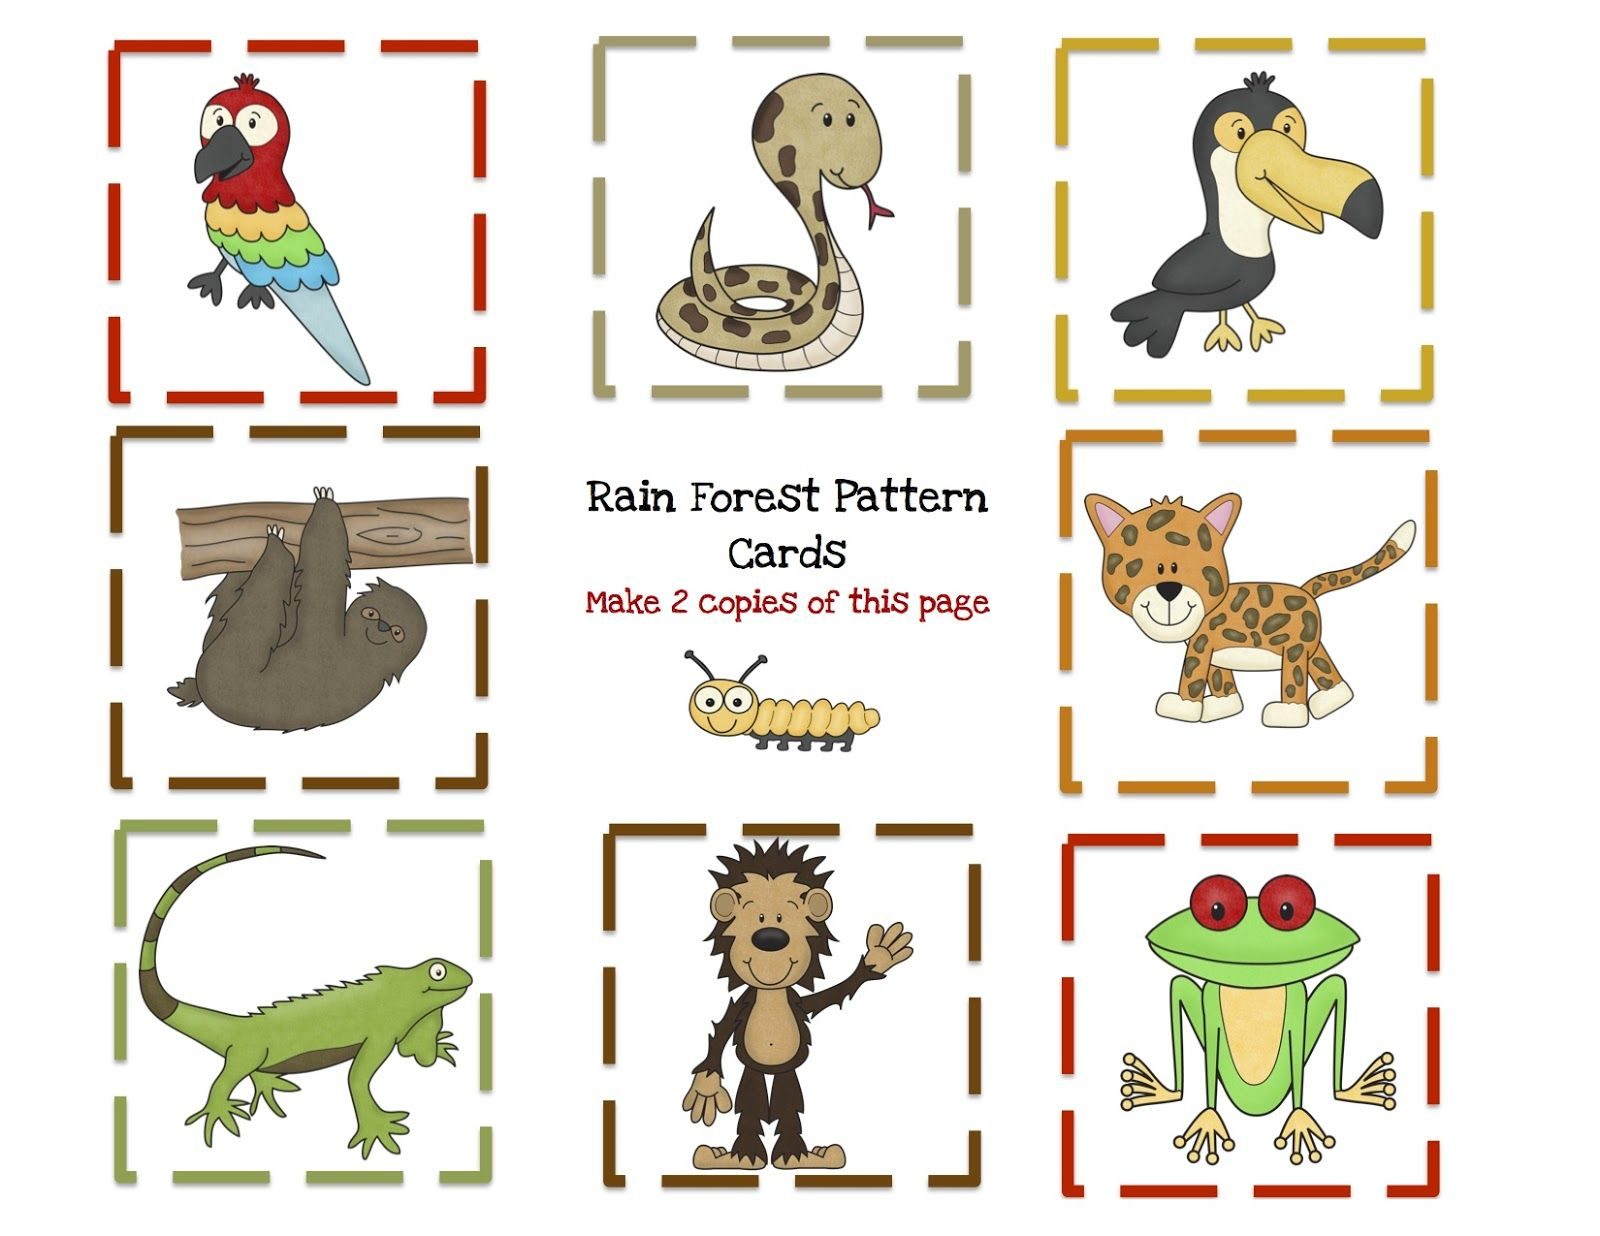 Rain Forest Pattern Cards